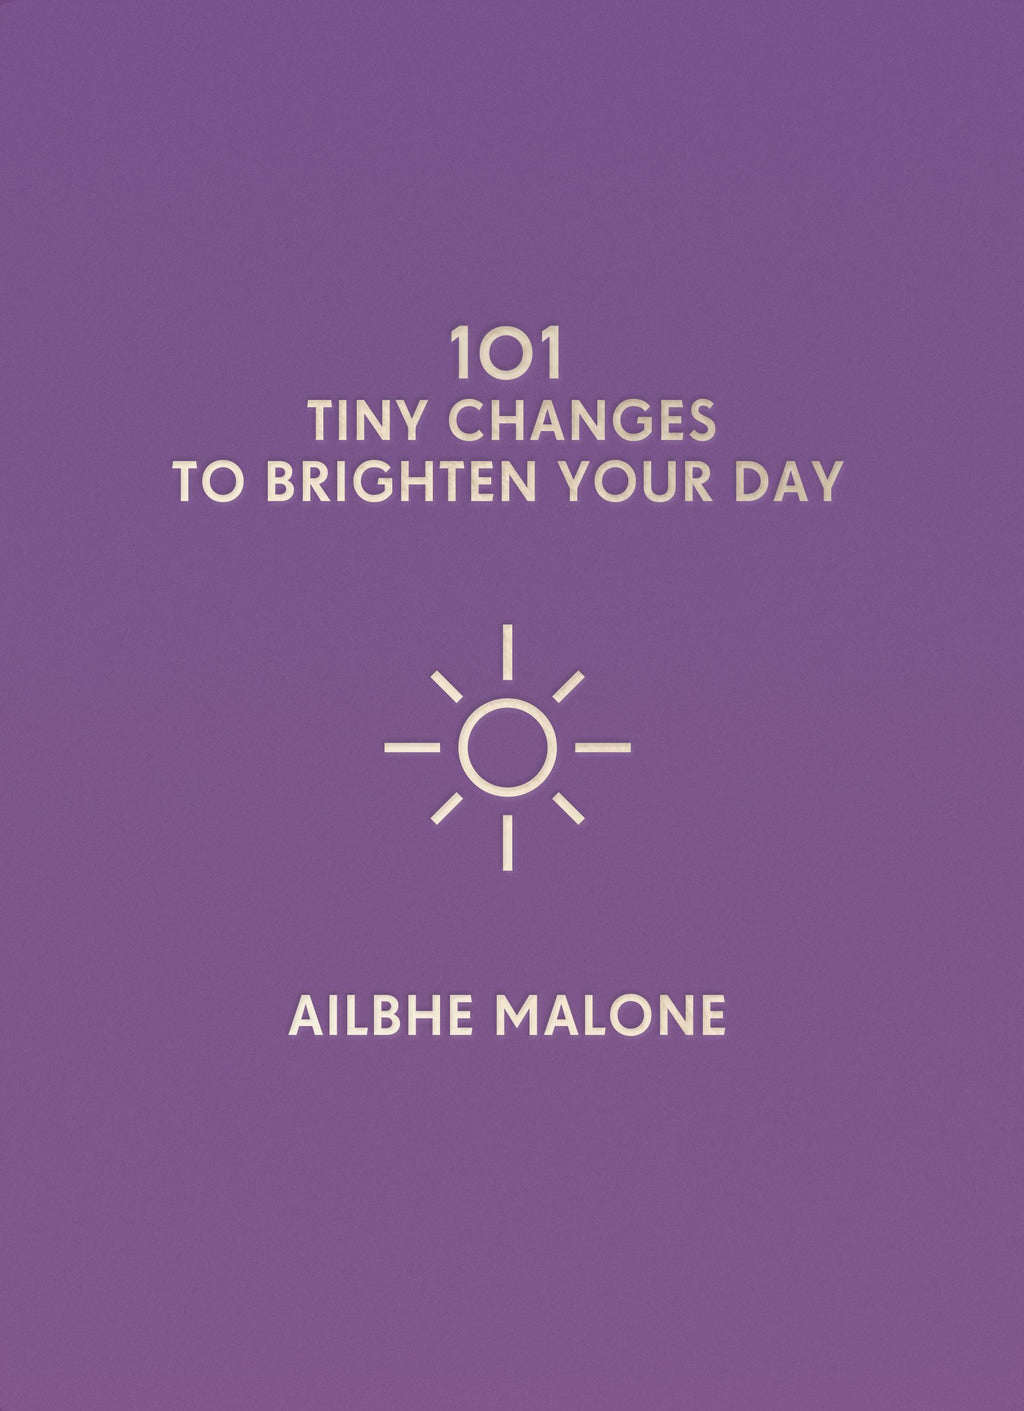 Book - 101 Tiny Changes to Brighten Your Day